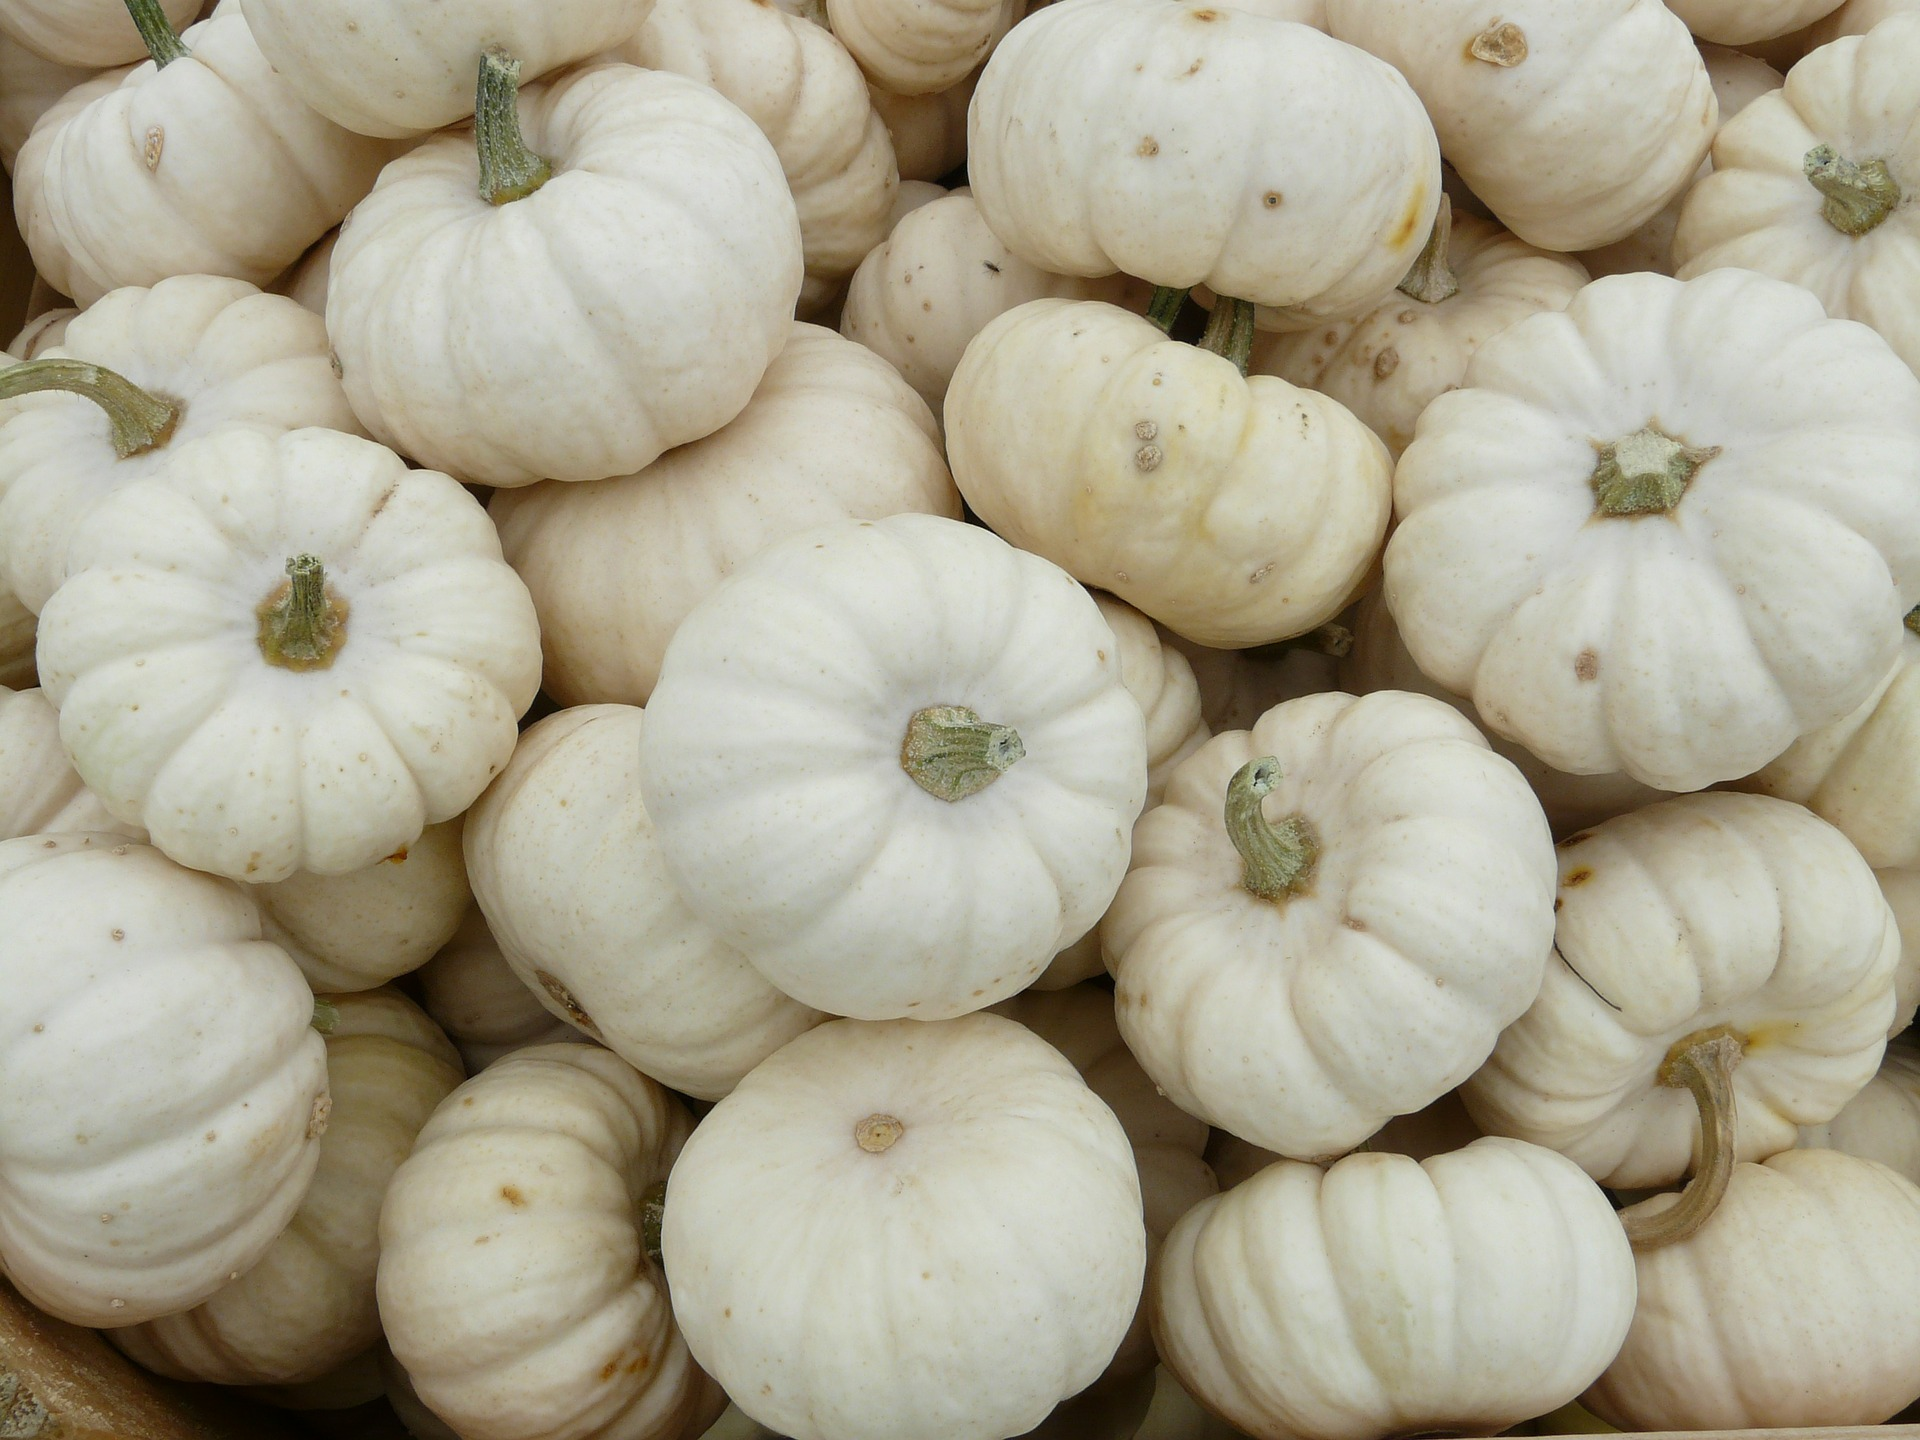 mini-pumpkins-61281_1920.jpg